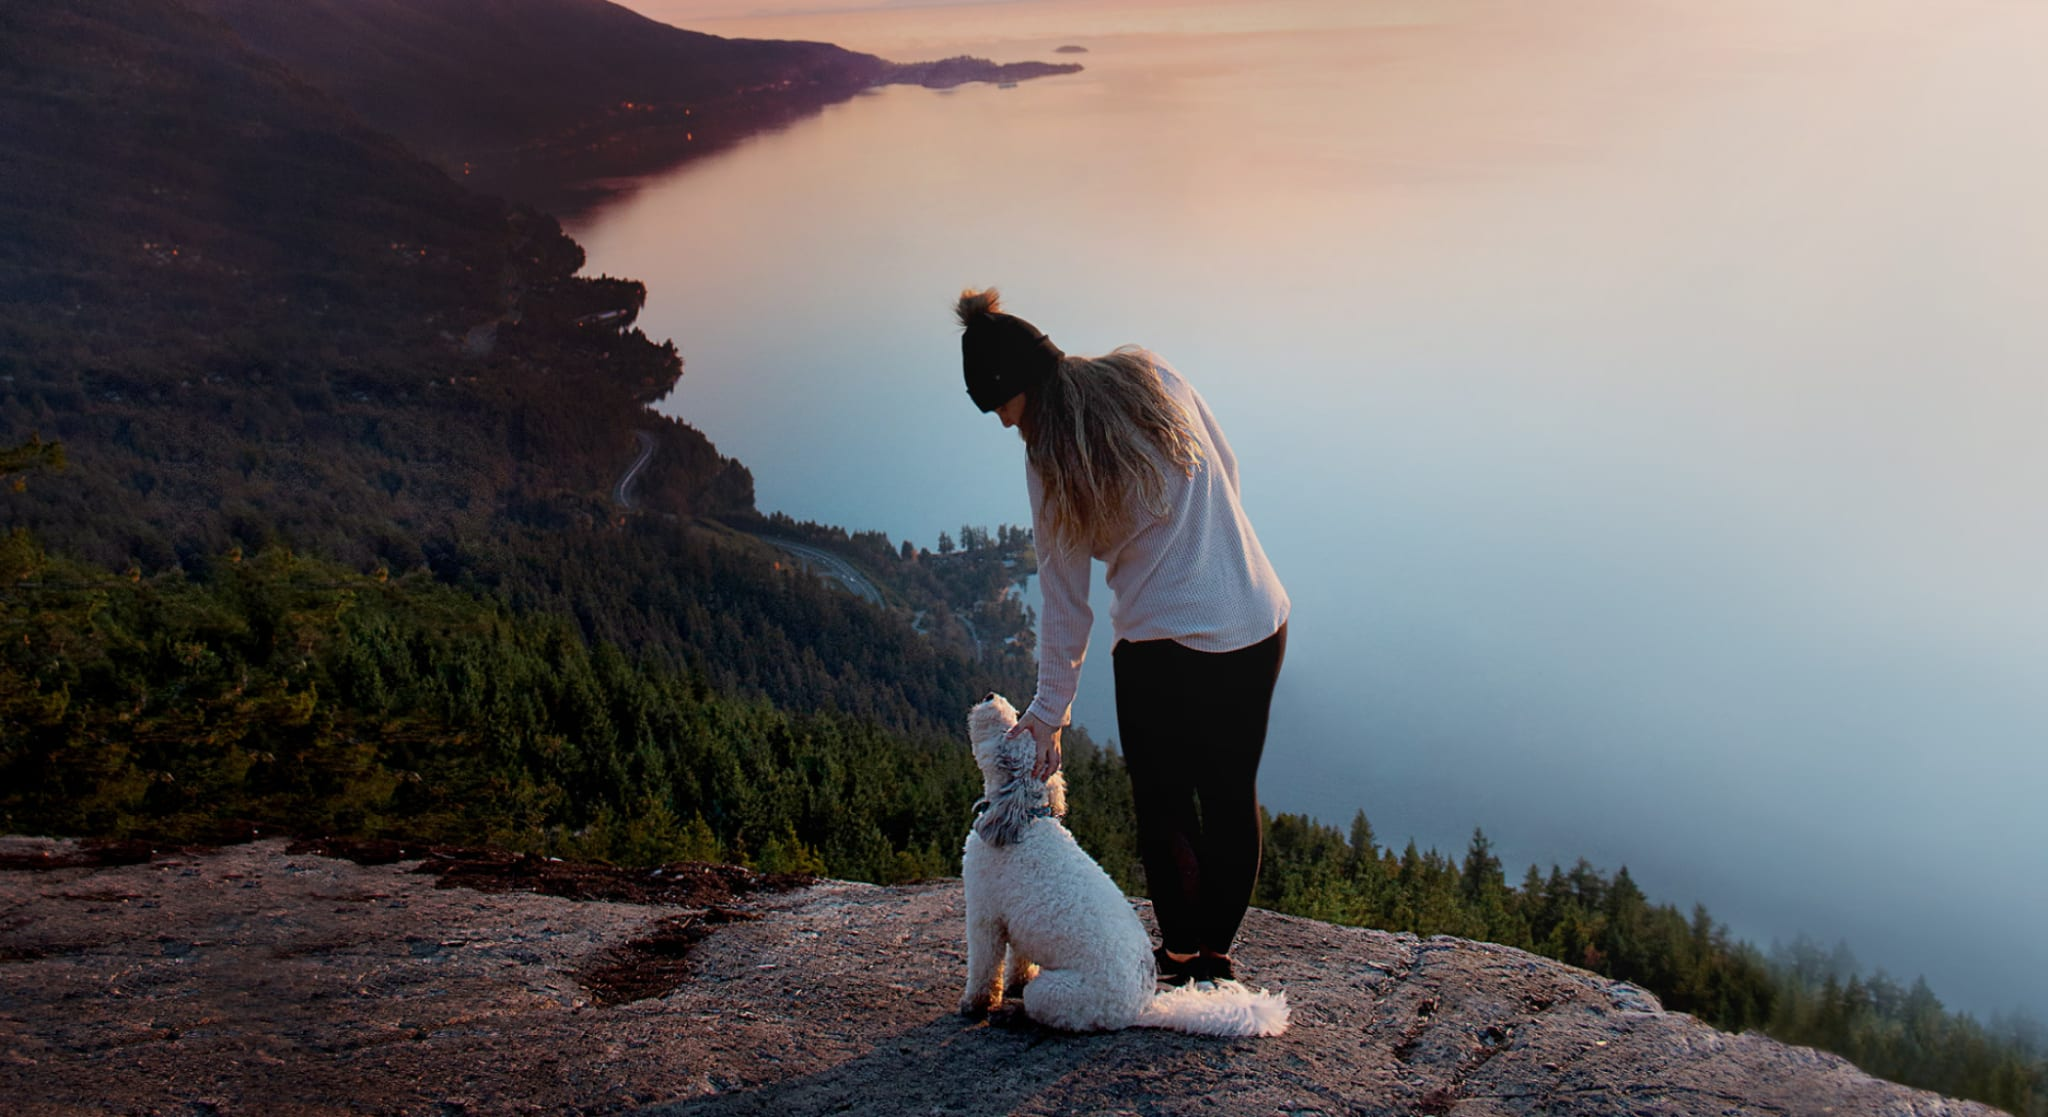 Woman petting dog on mountain overlooking lake and forest